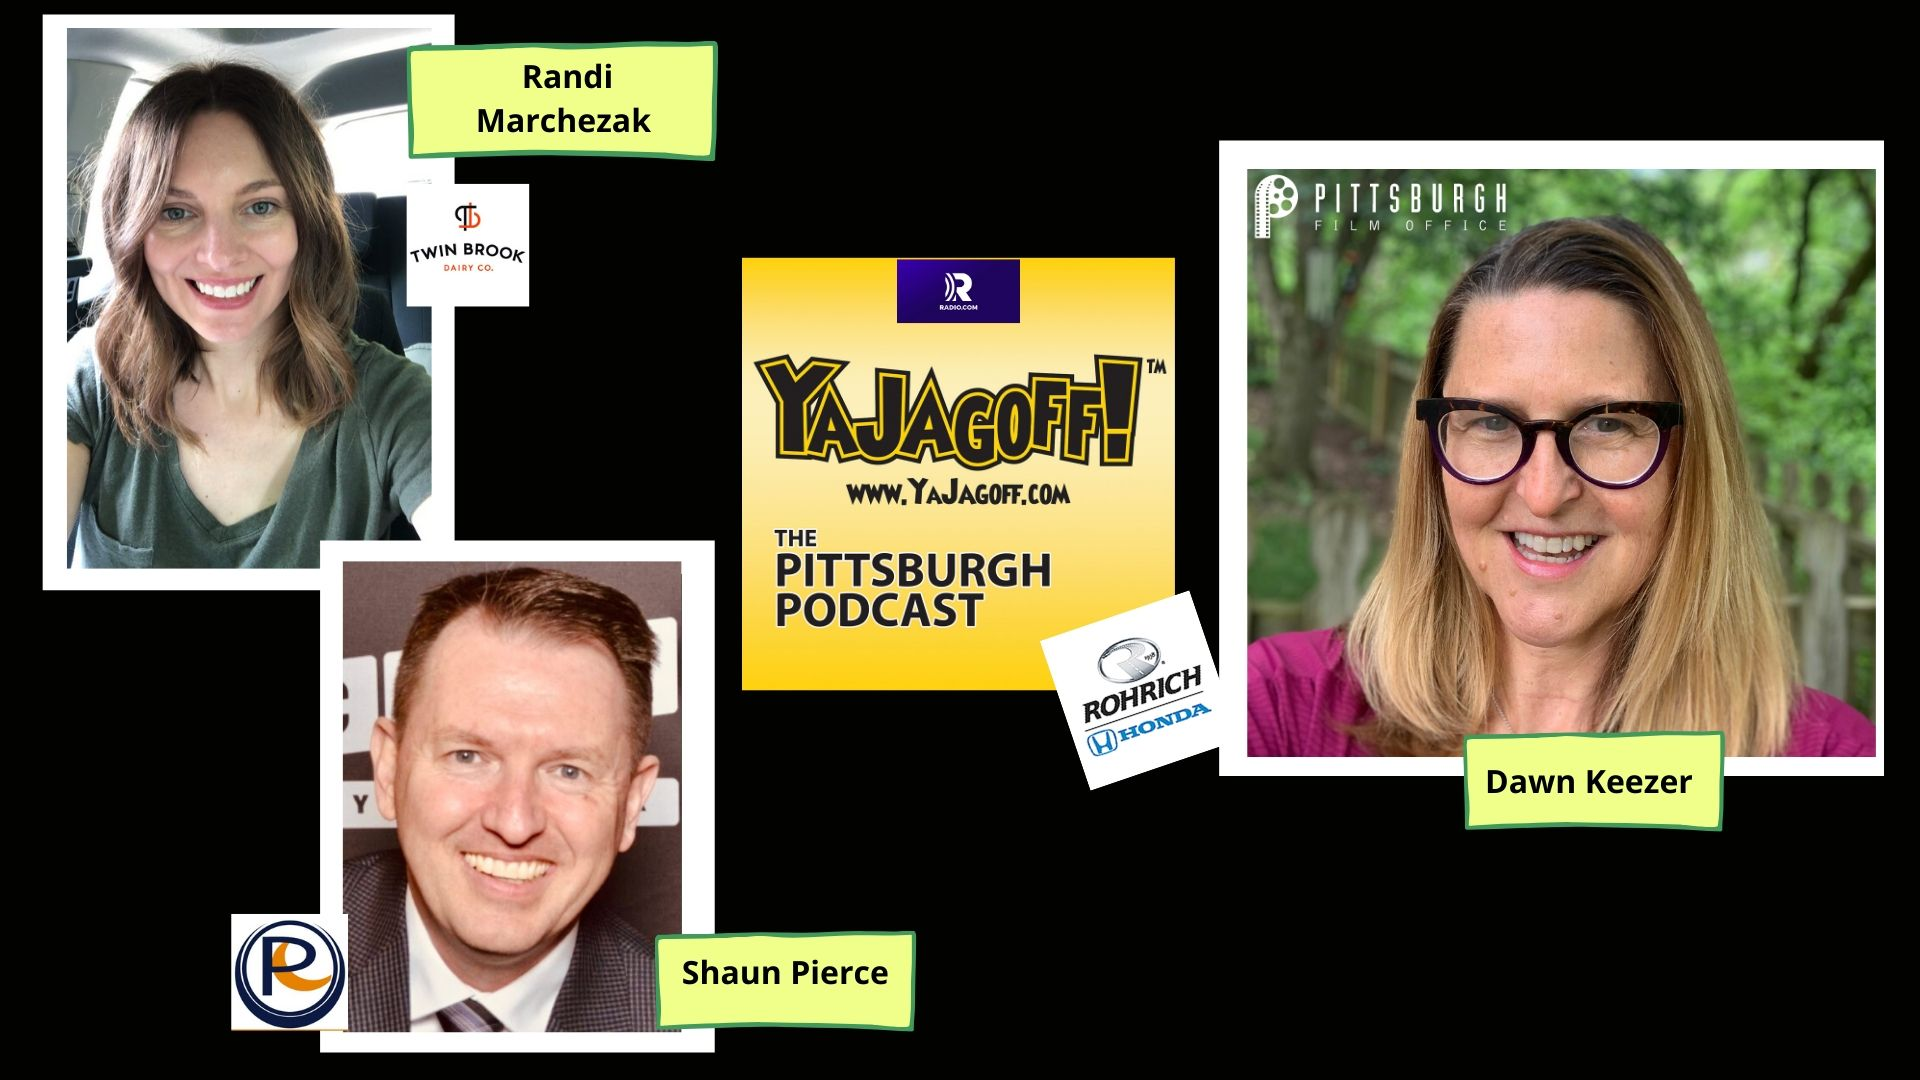 YaJagoff Podcast with Dawn Keezer